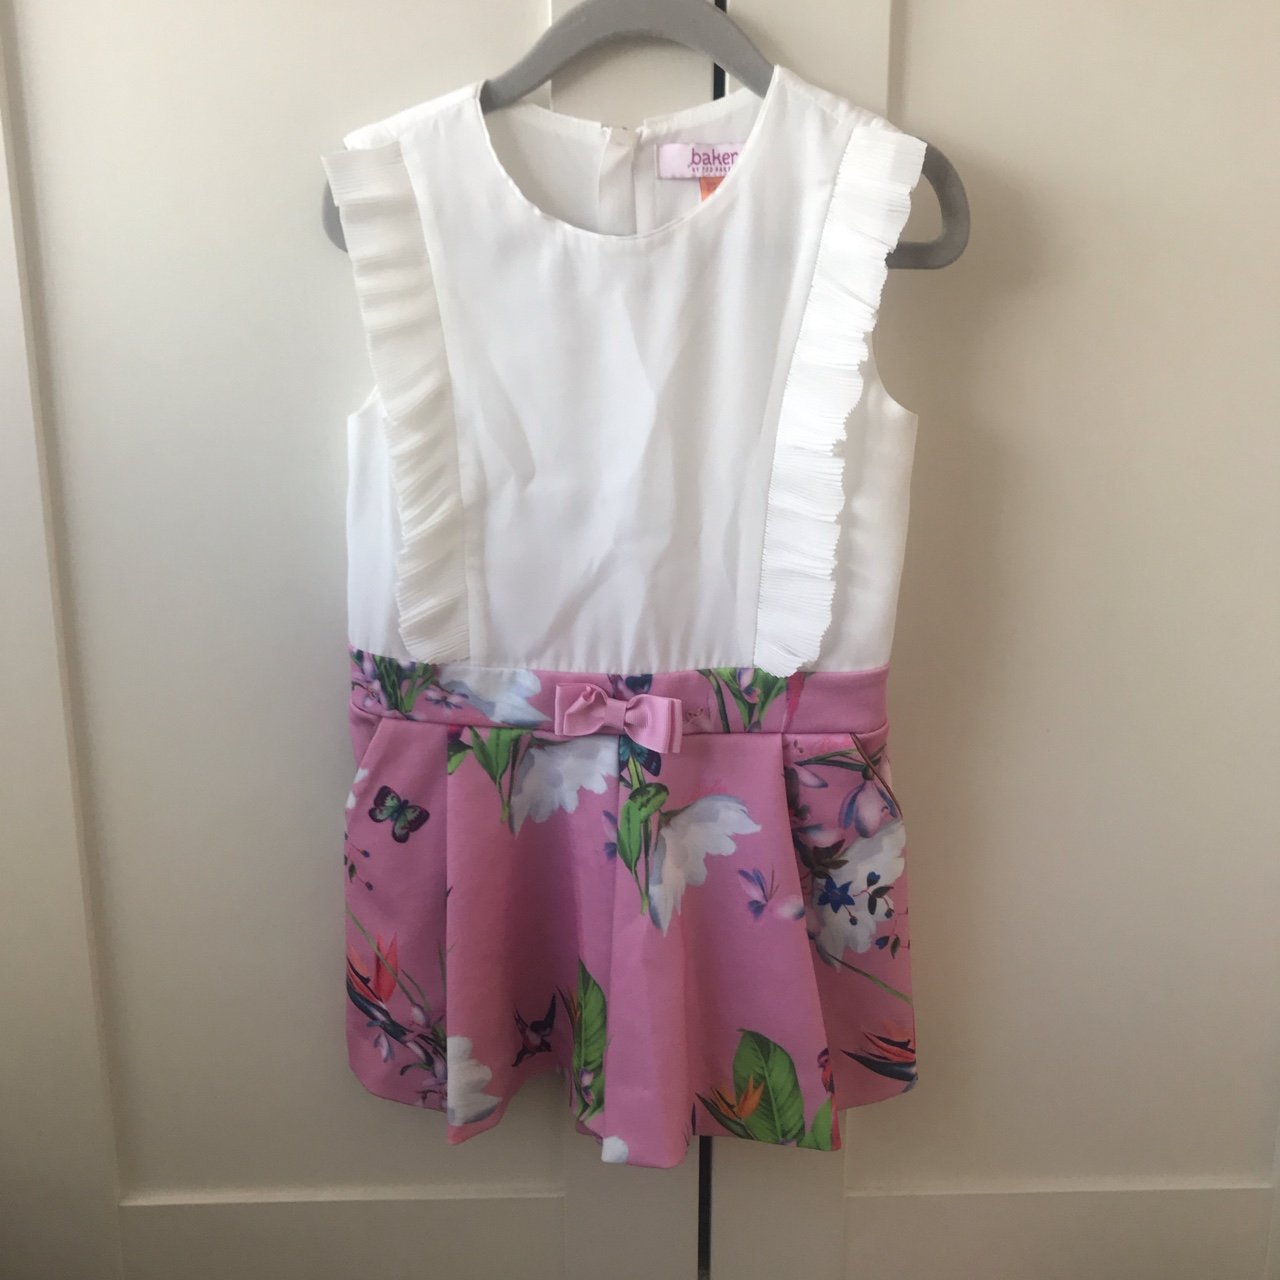 5eed03994b6b Baker baby playsuit £6 inc